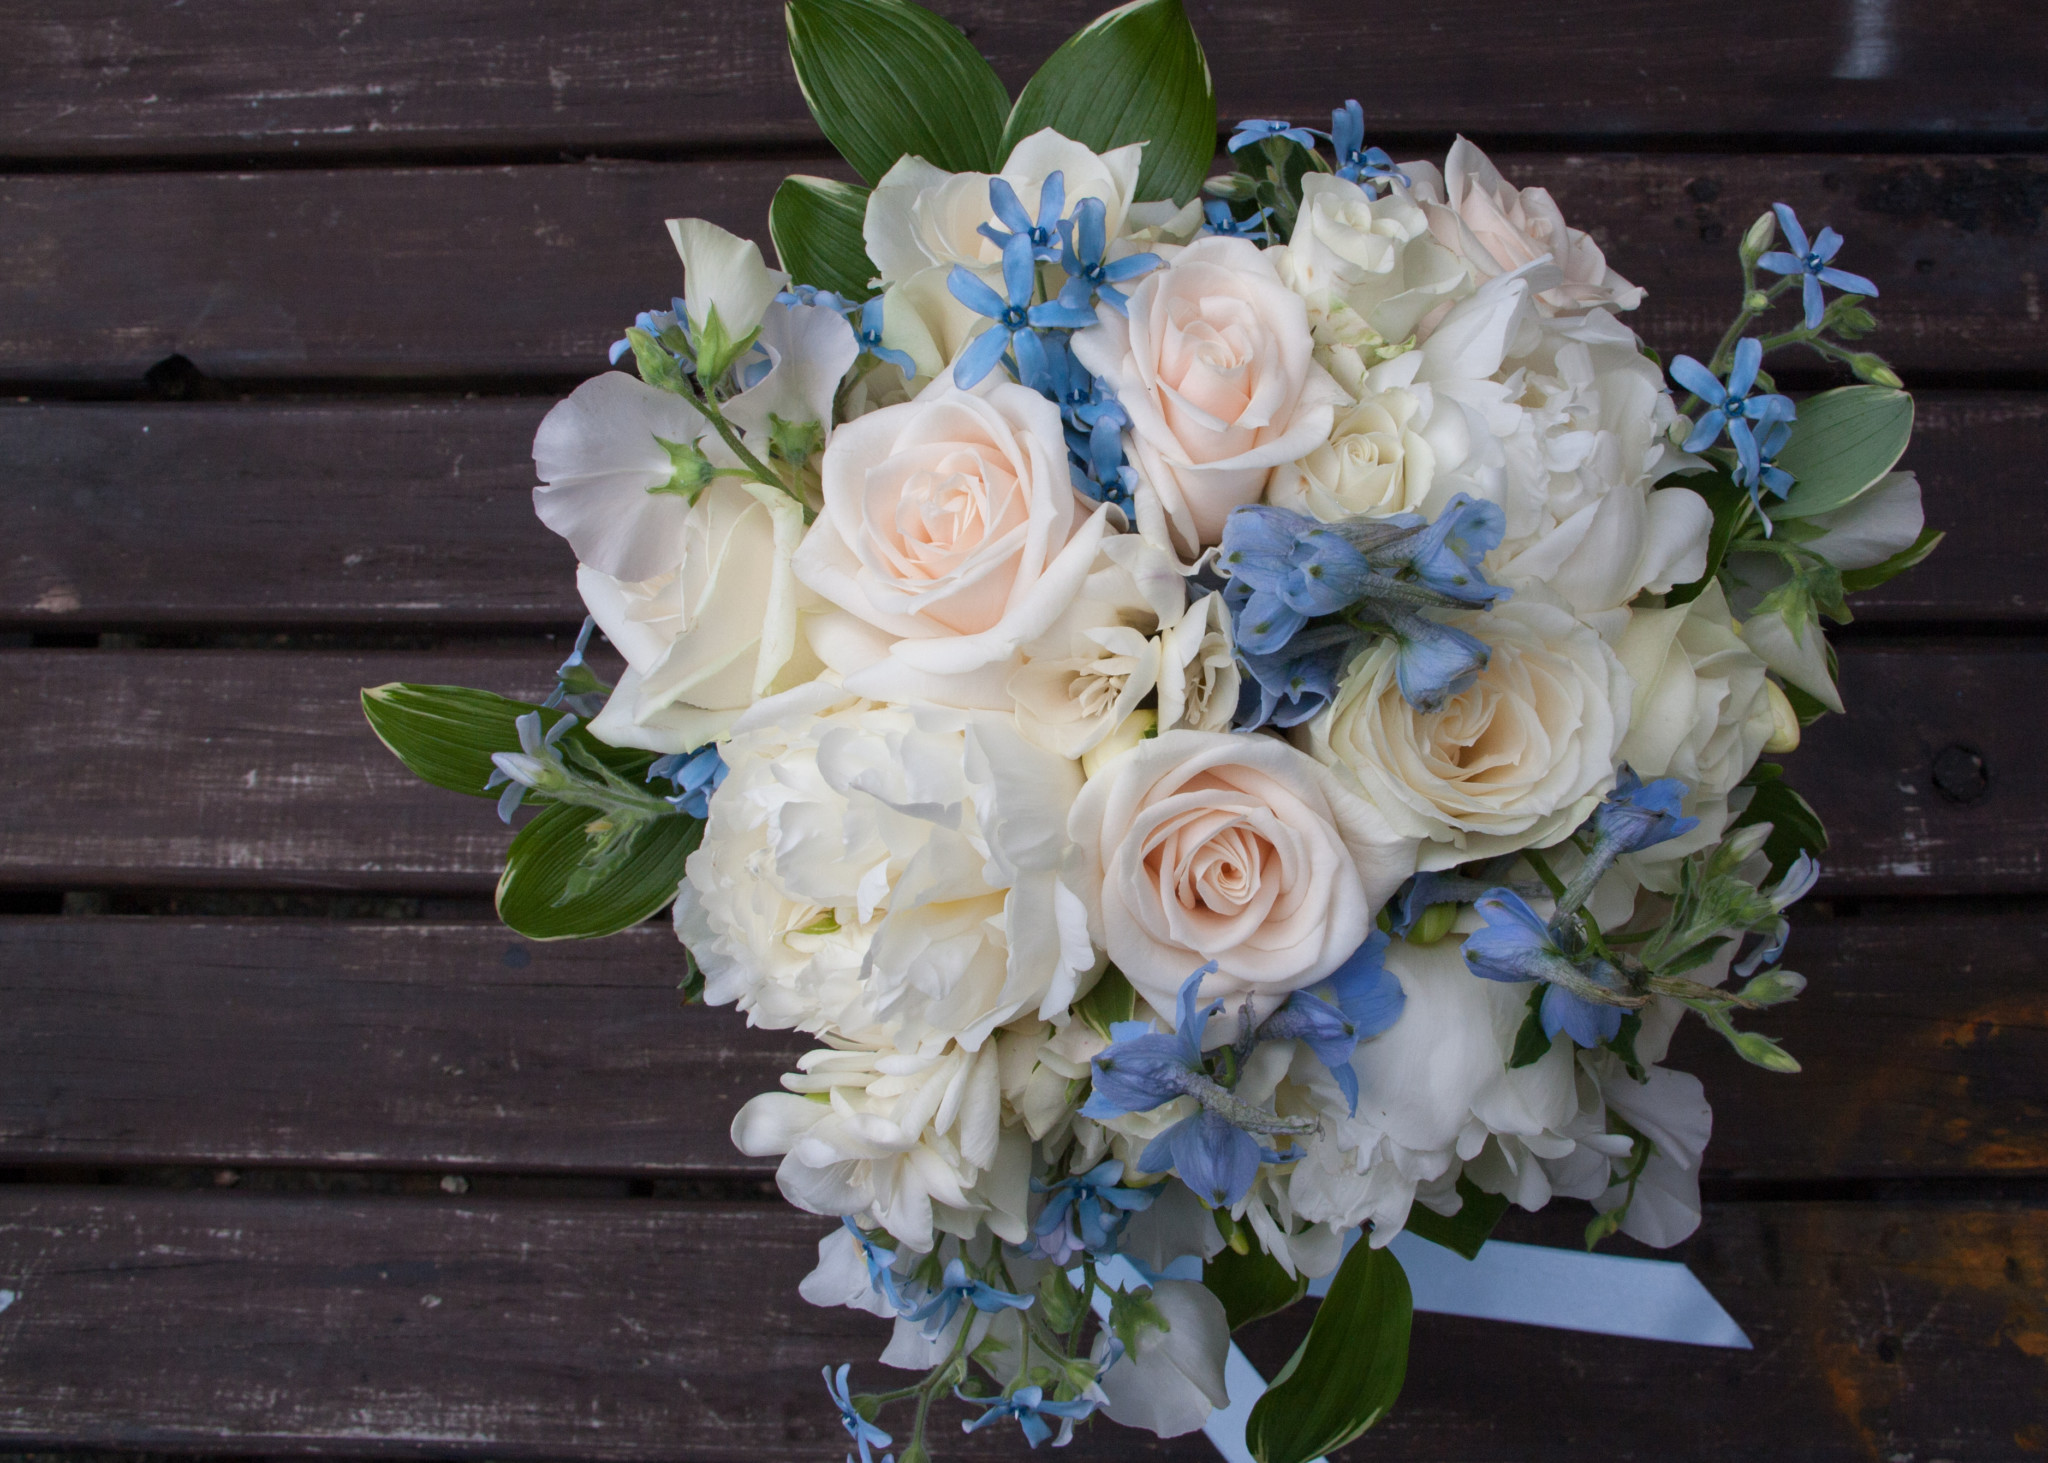 Showing bridal bouquet with pale blue flowers